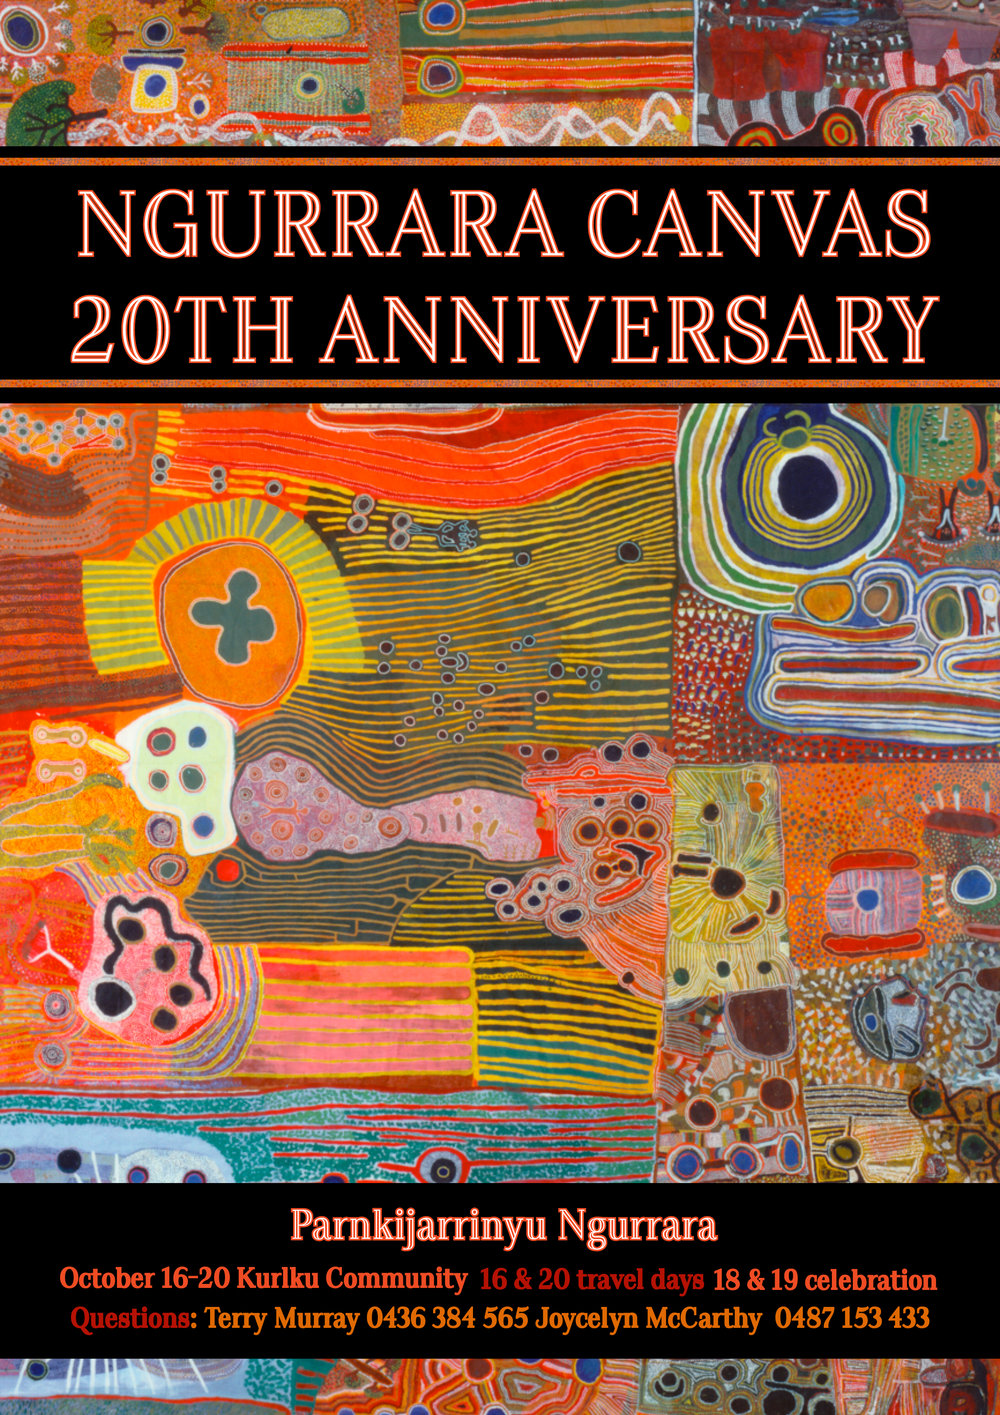 Ngurrara Canvas 20th Anniversary Final .jpg